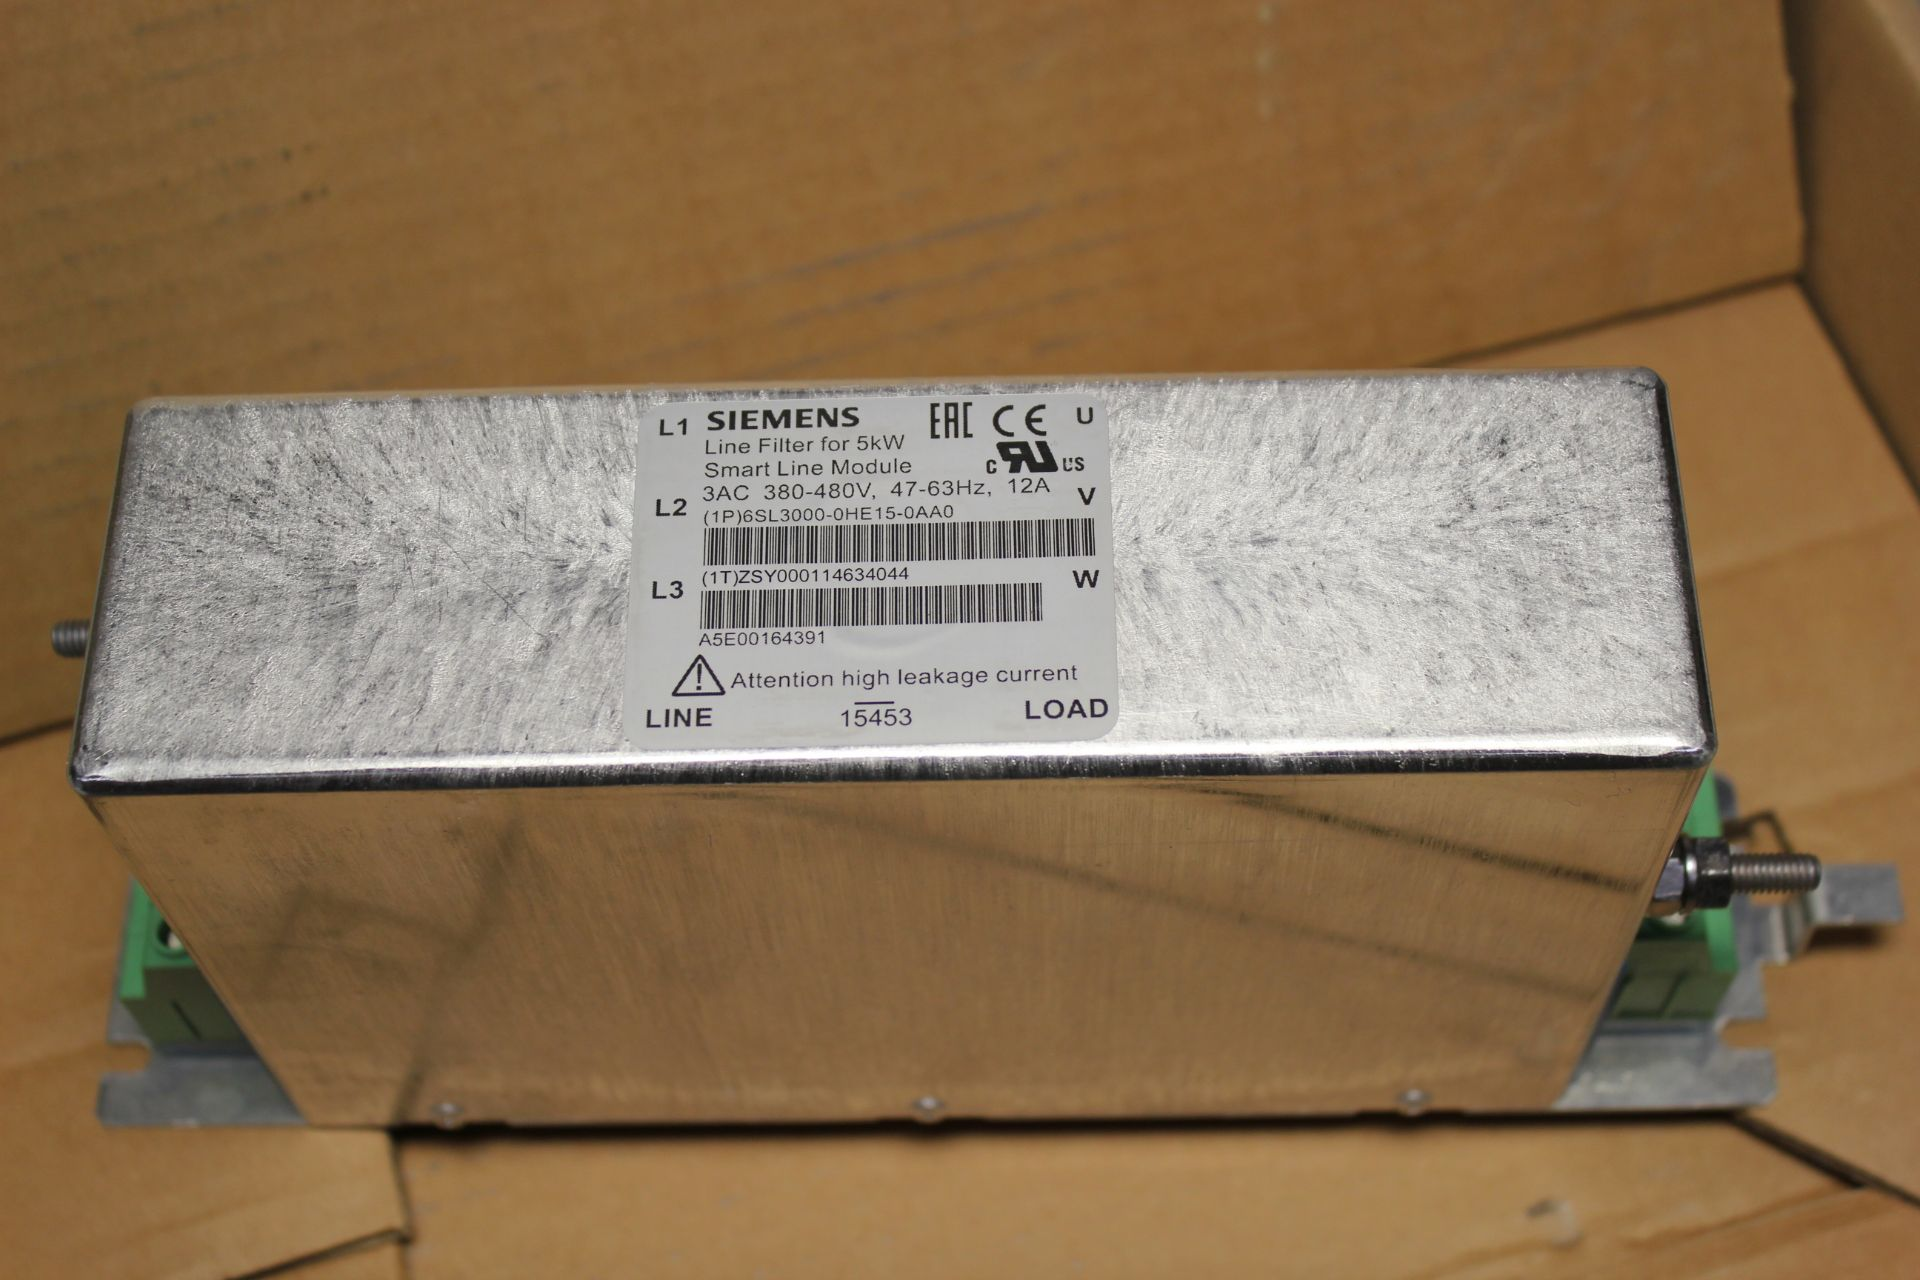 NEW SIEMENS LINE FILTER FOR SMART LINE MODULE - Image 5 of 5